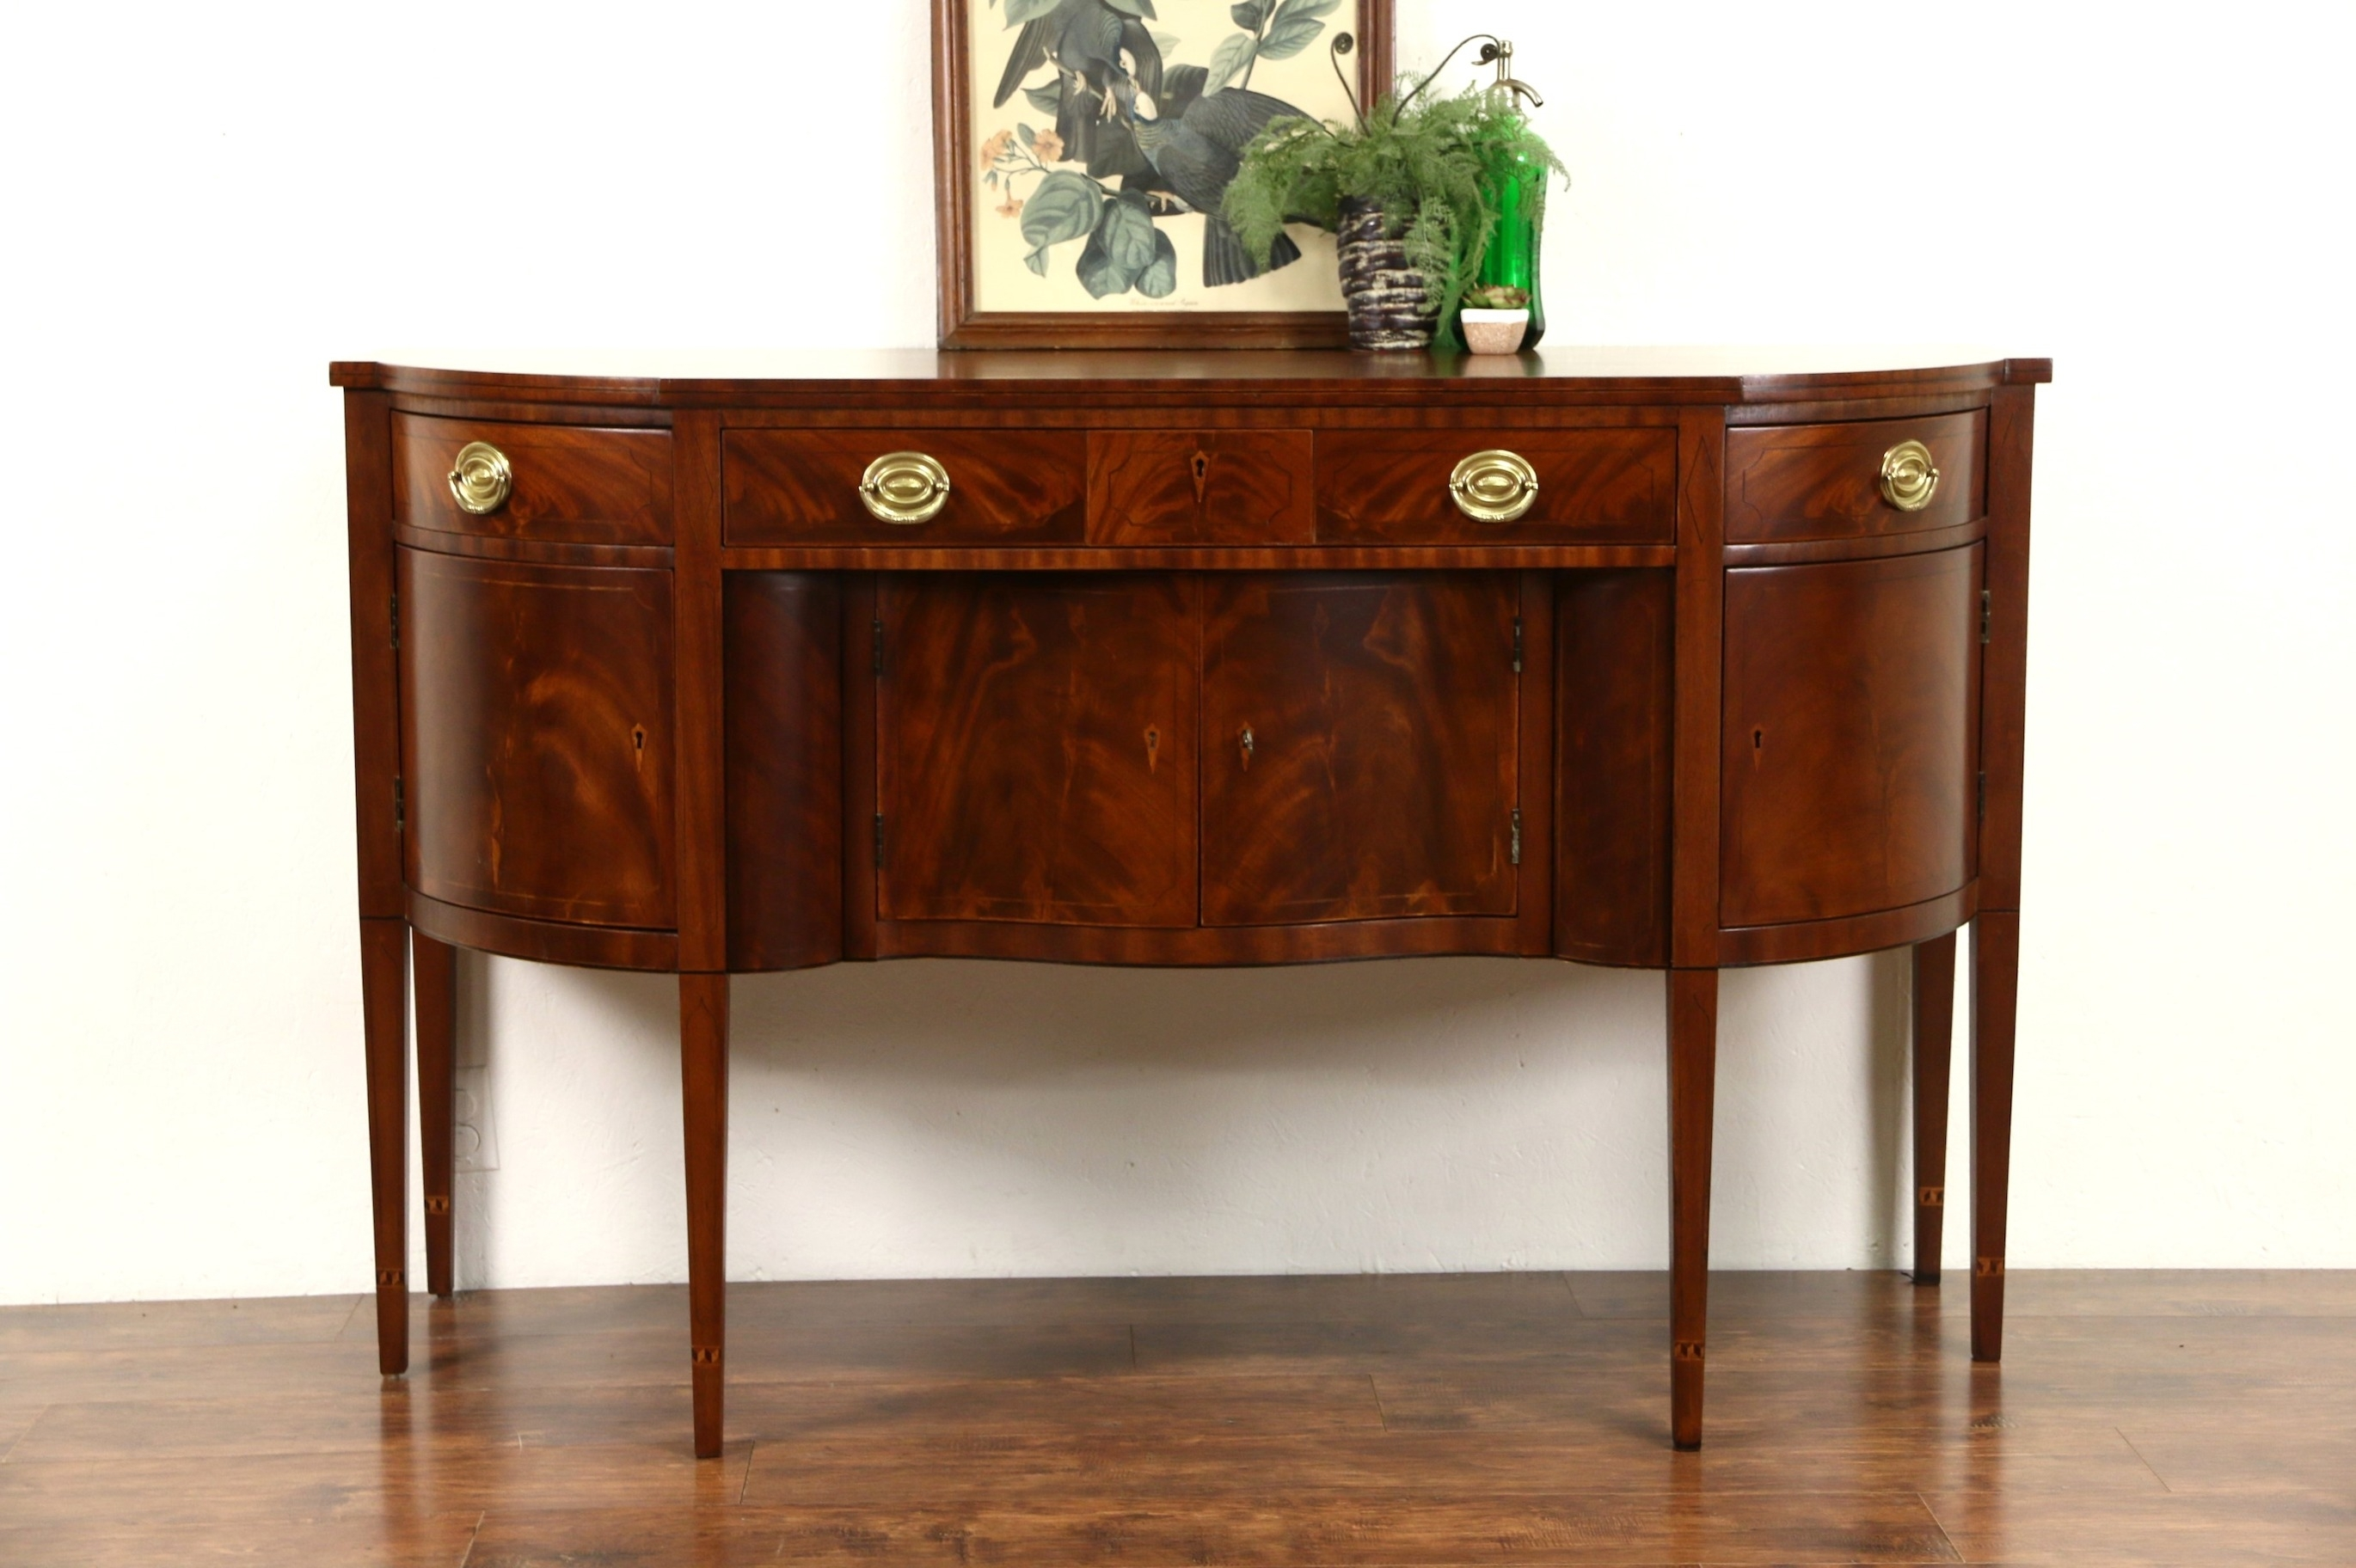 Sold - Henredon Natchez Collection Vintage Mahogany Sideboard within Vintage Brown Textured Sideboards (Image 17 of 30)